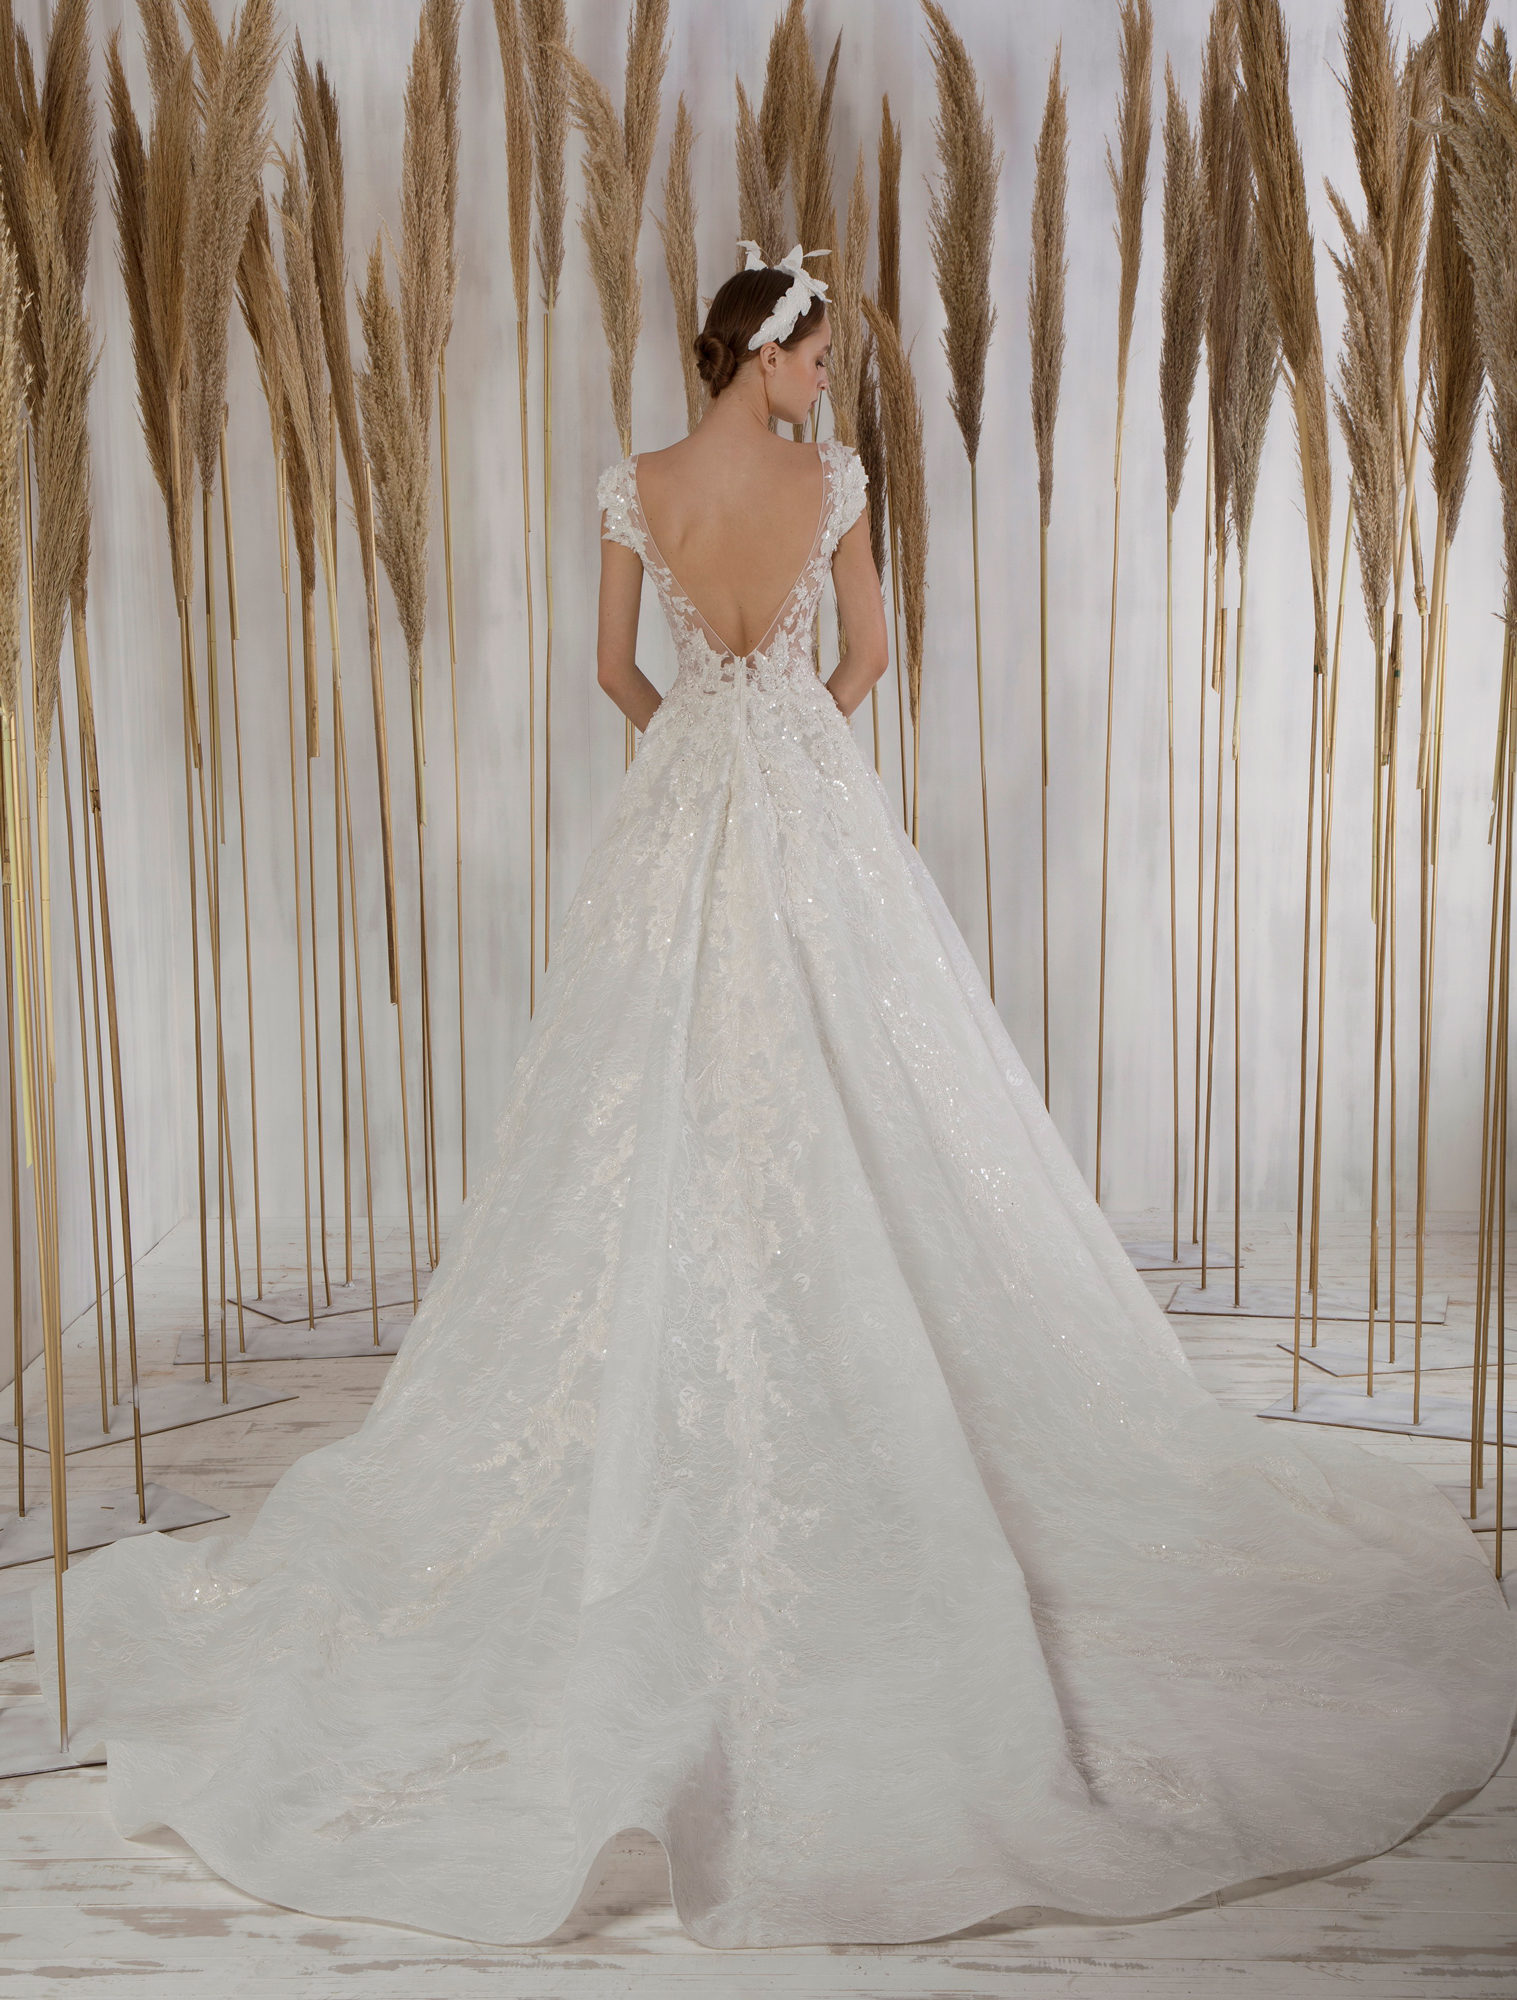 Vivian by Tony Ward from the La Mariee Collection